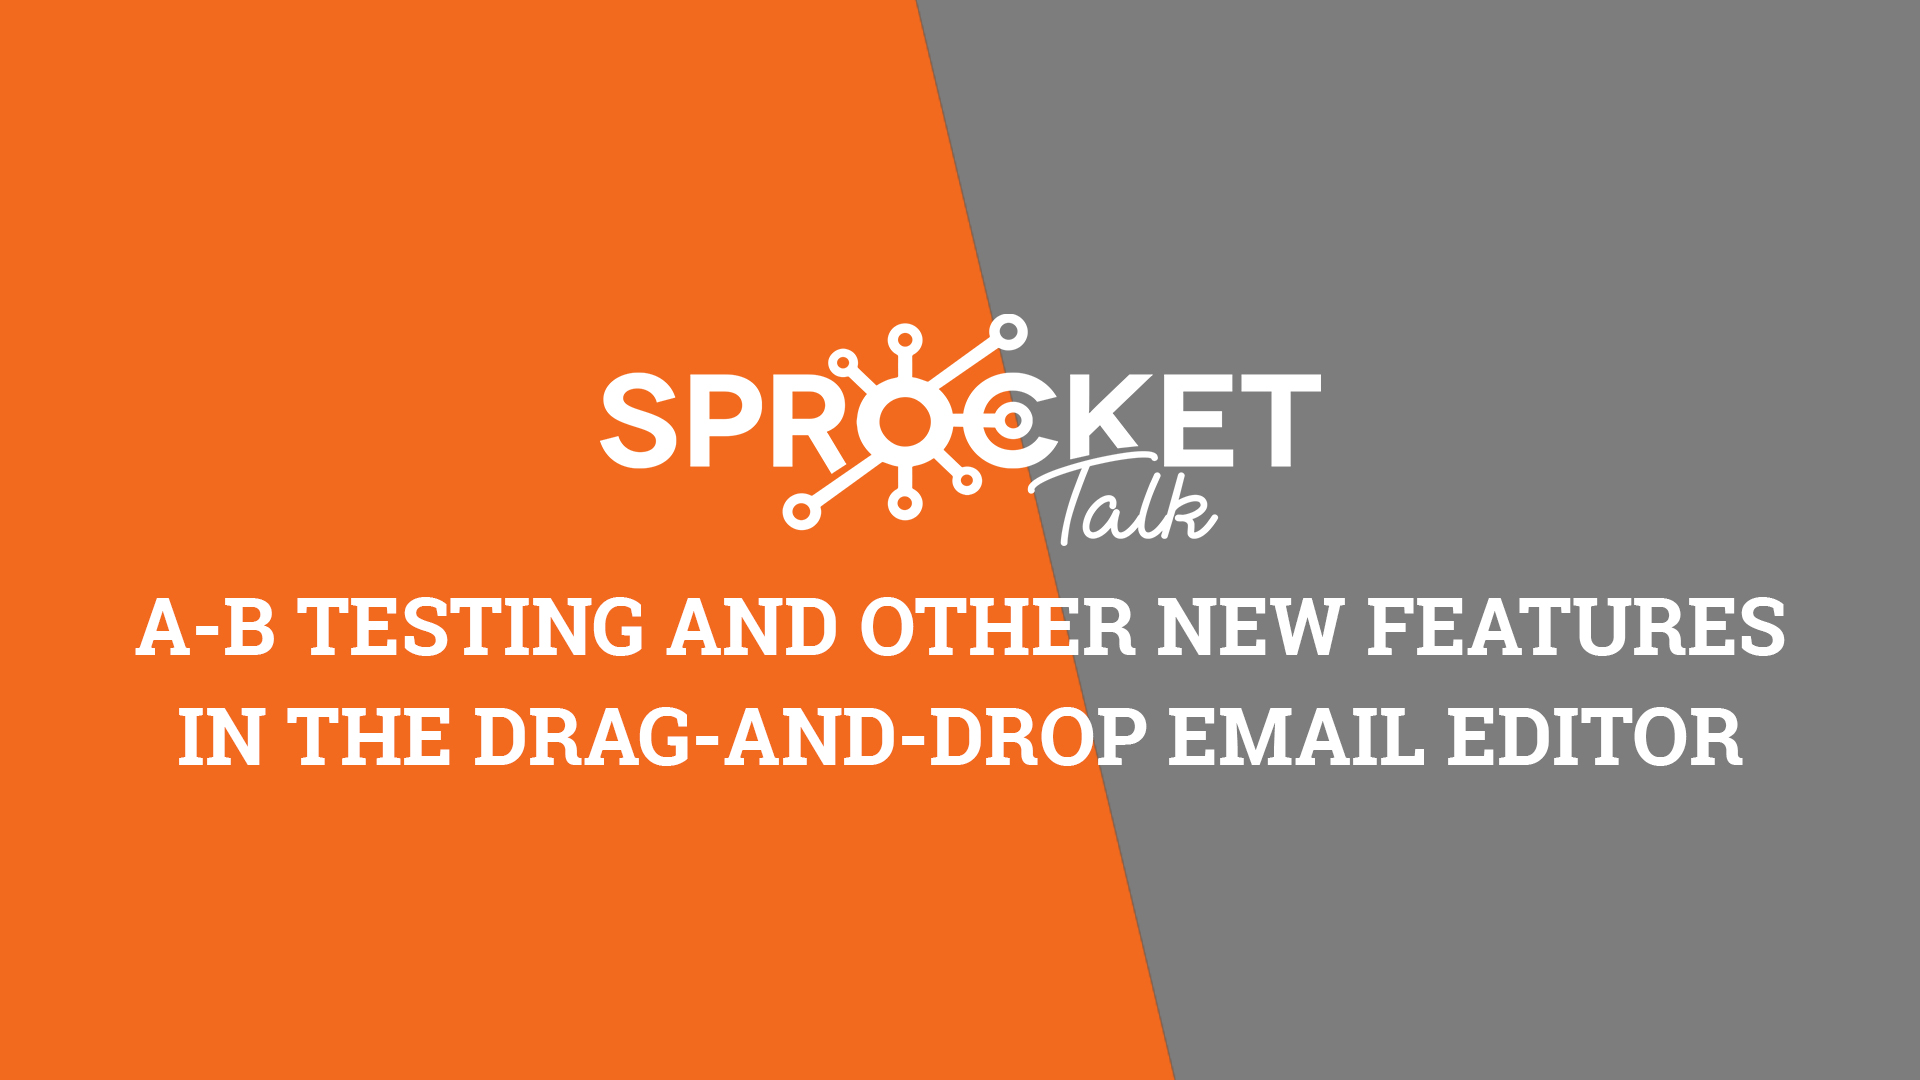 A-B Testing and Other New Features in the Drag-and-Drop Email Editor